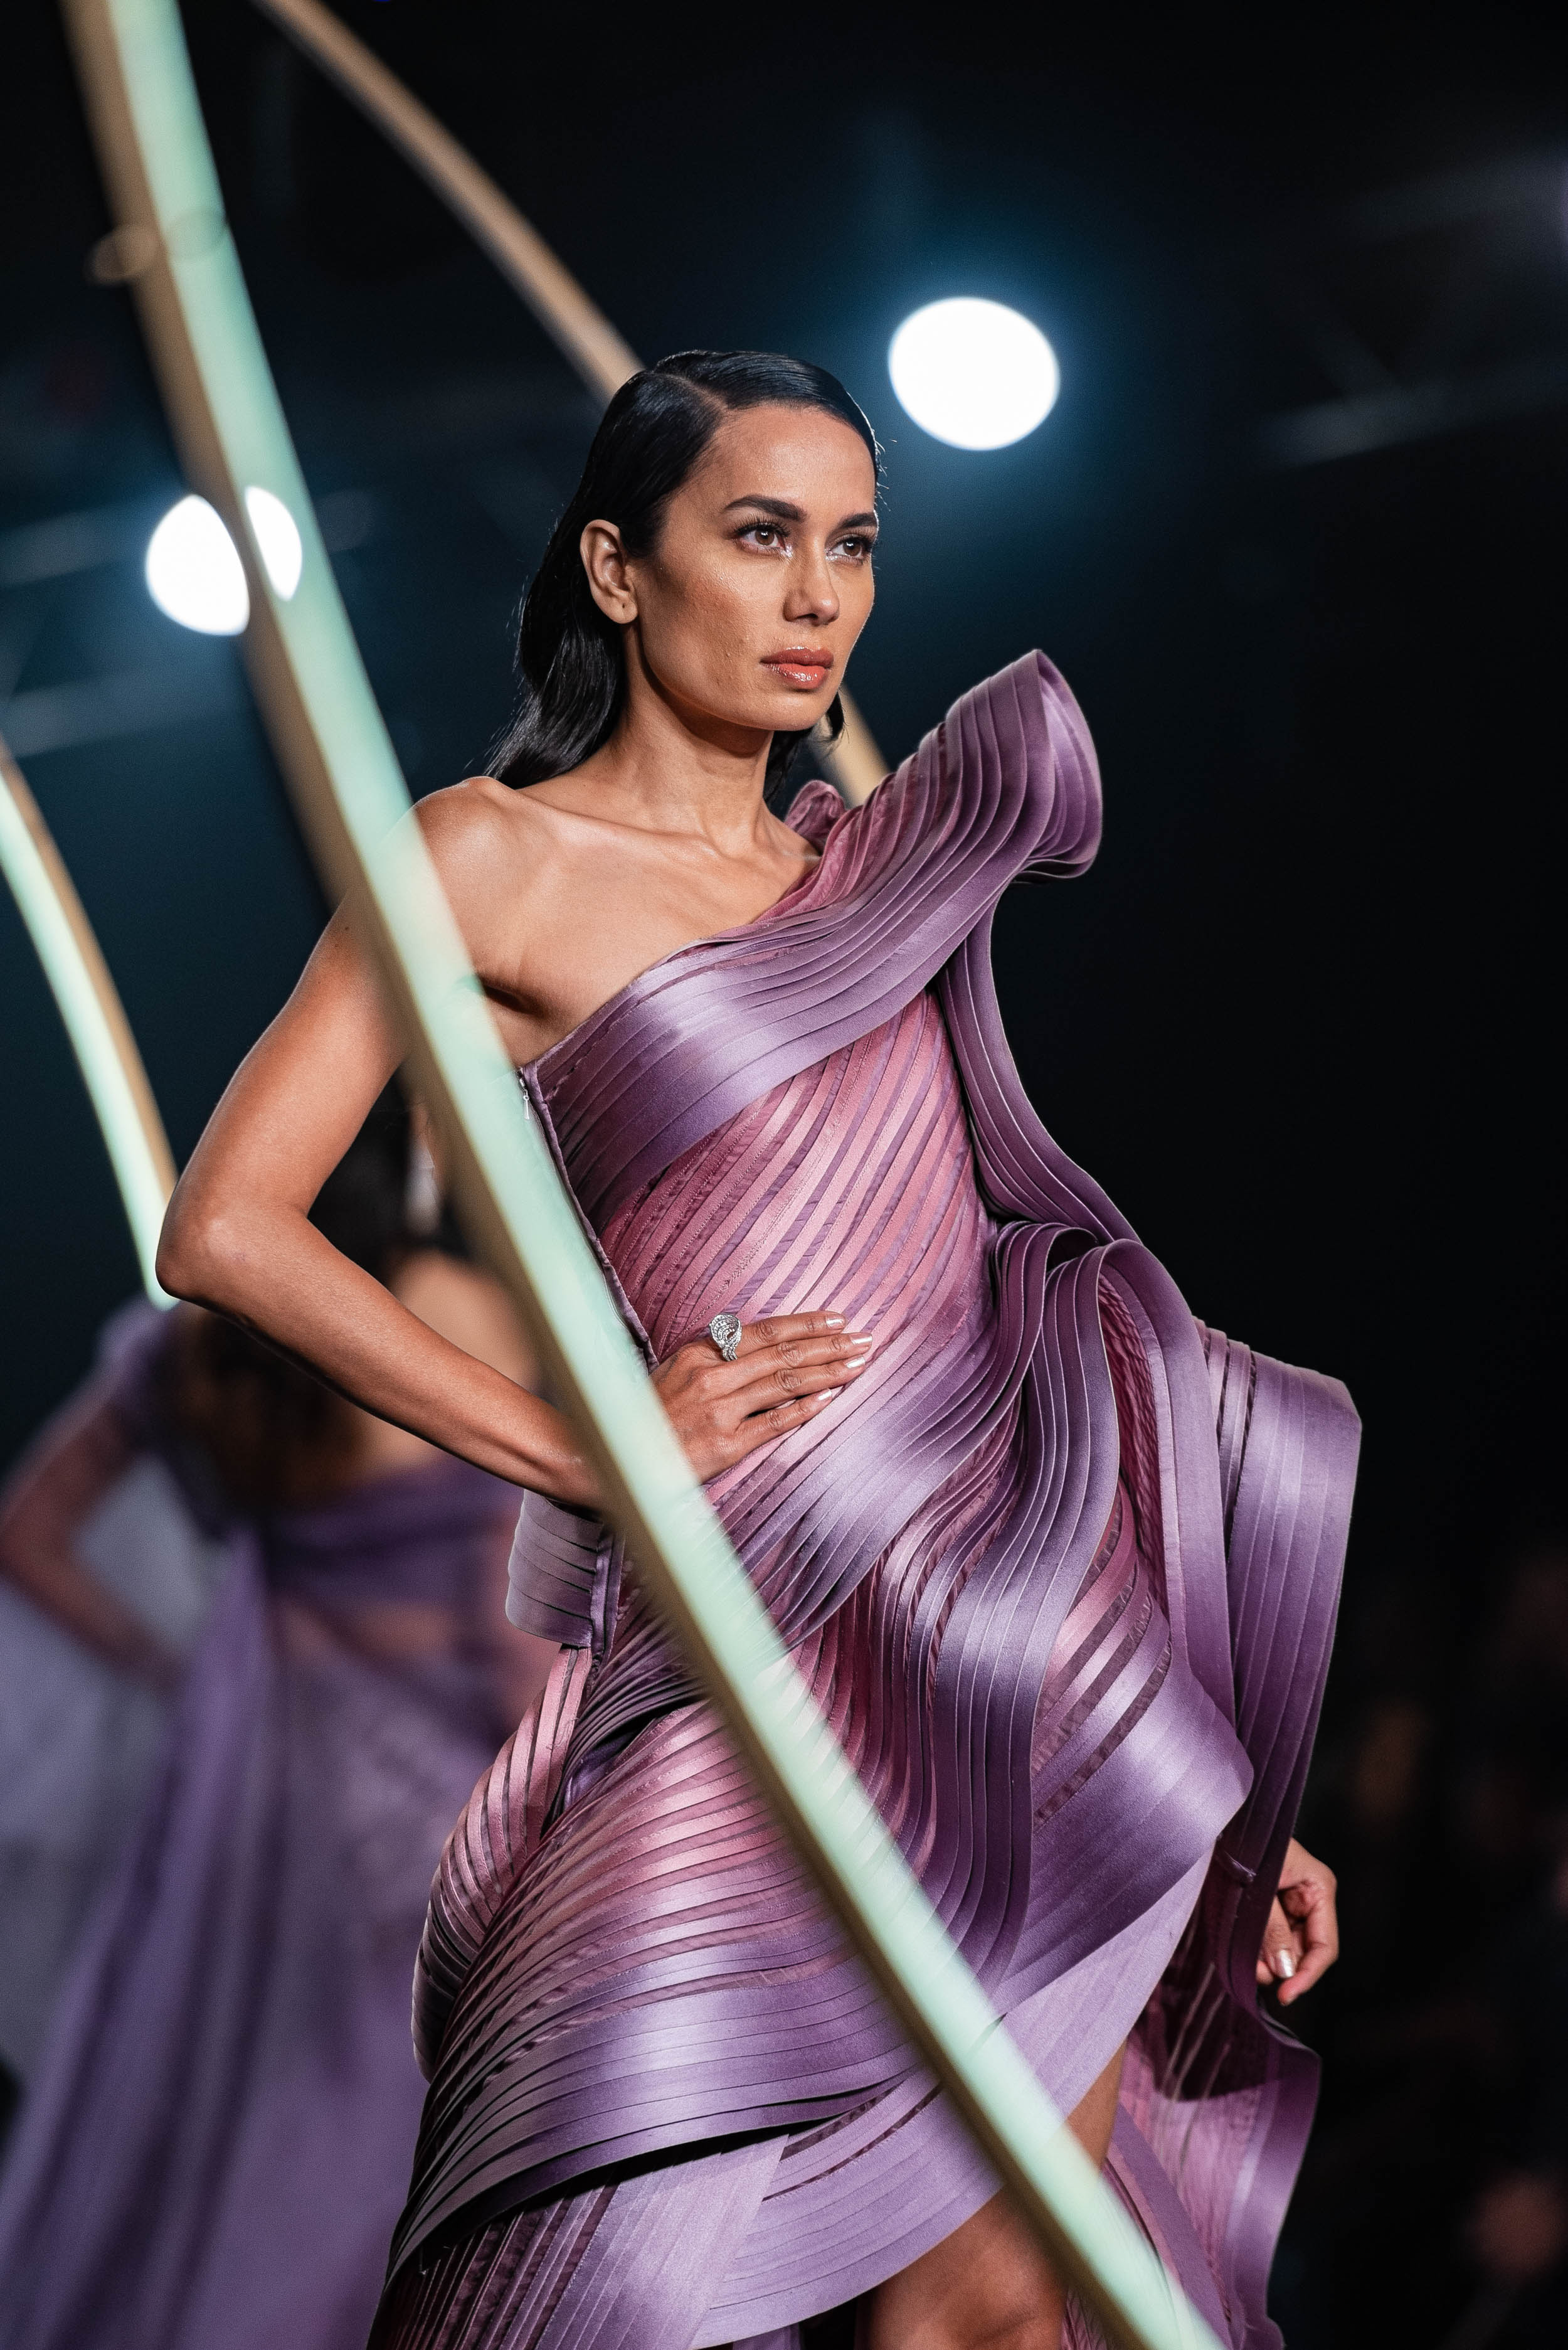 #EyesForFashion, Close Up Couture, Couture Close Up, couture week, fashion blogger, Fashion Design Council of India, fashion photographer, Fashion Week, Fashion Week Photographer, ICW2019, india couture week 2019, indian couture, lifestyle blogger, lifestyle photographer, luxury blogger, luxury photographer, Made In India, naina redhu, naina.co, new delhi, photo blogger, Runway Photographer, Taj Palace New Delhi, The FDCI, the voice of fashion, TVoF, Gaurav Gupta, Designer Gaurav Gupta, Gaurav Gupta Couture, GGPanther, Diana Penty